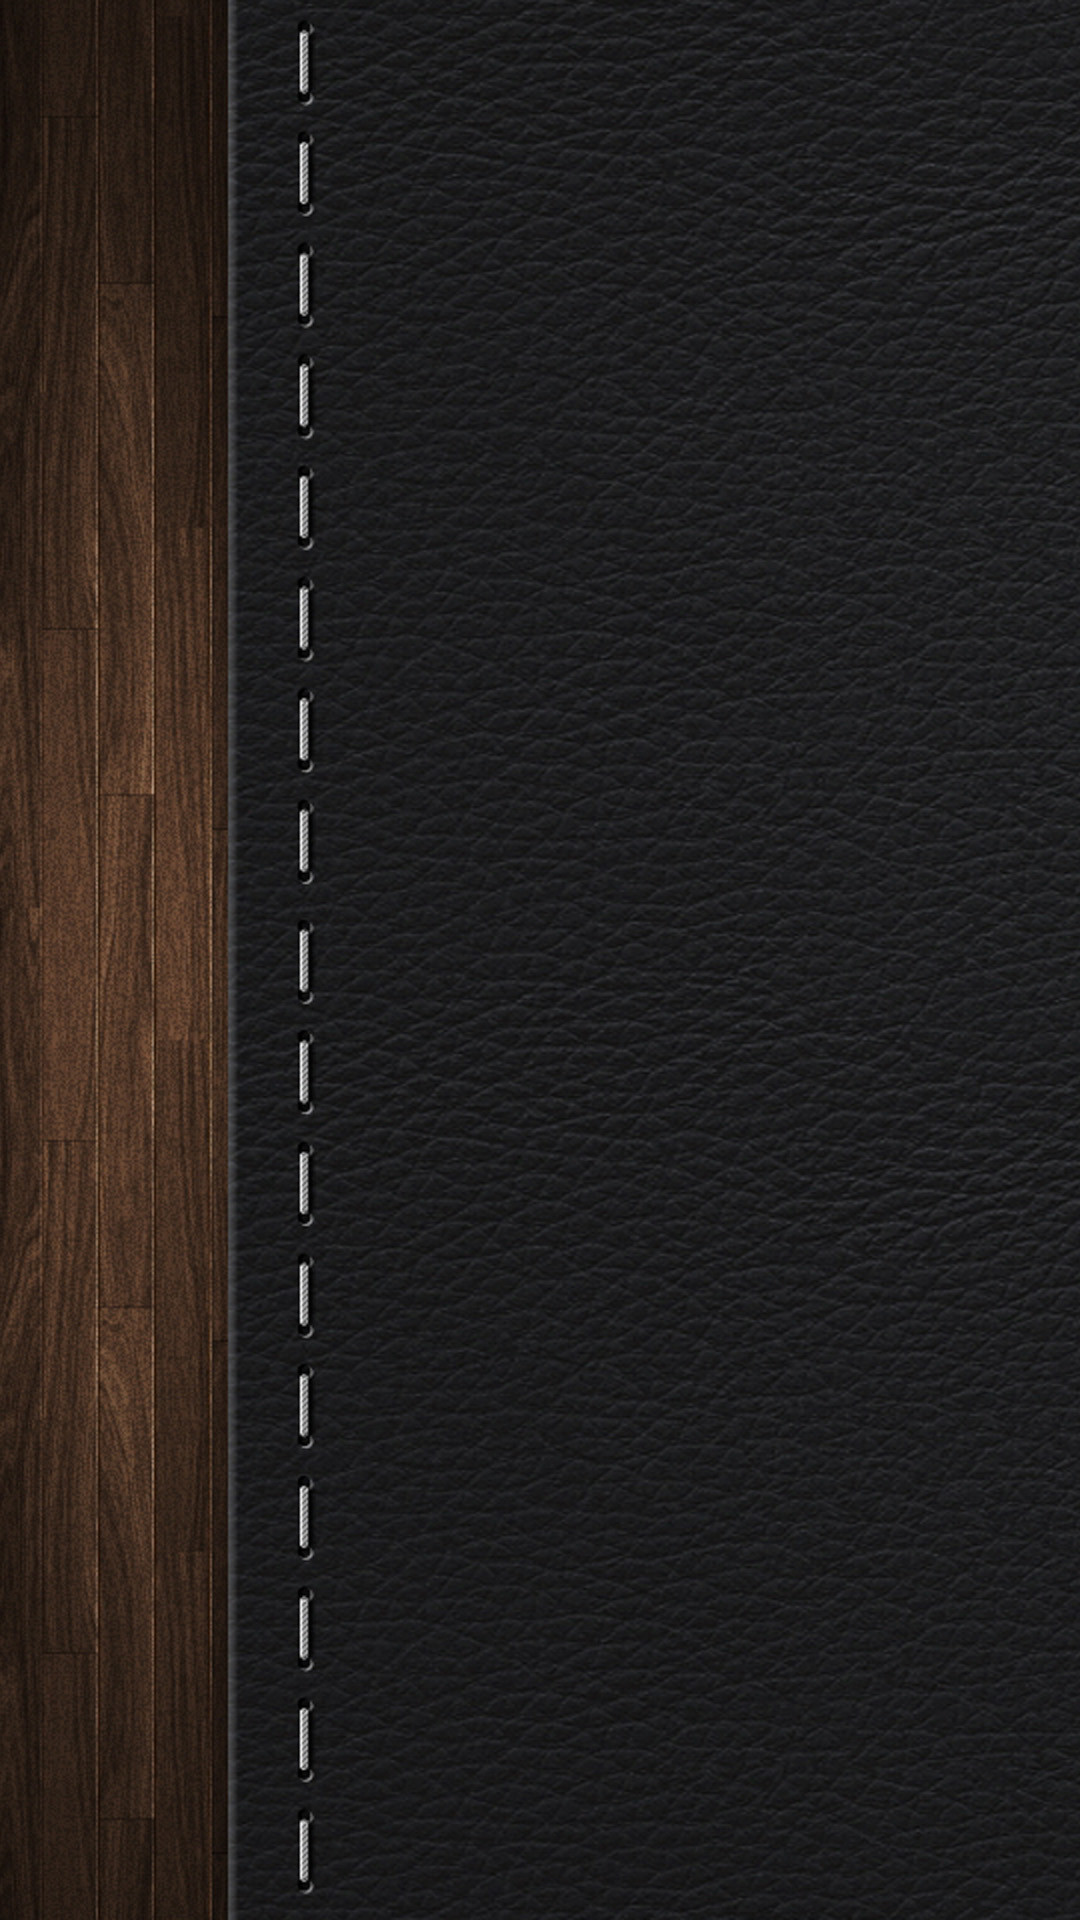 Background Leather stitching HD Wallpaper iPhone 6 plus .